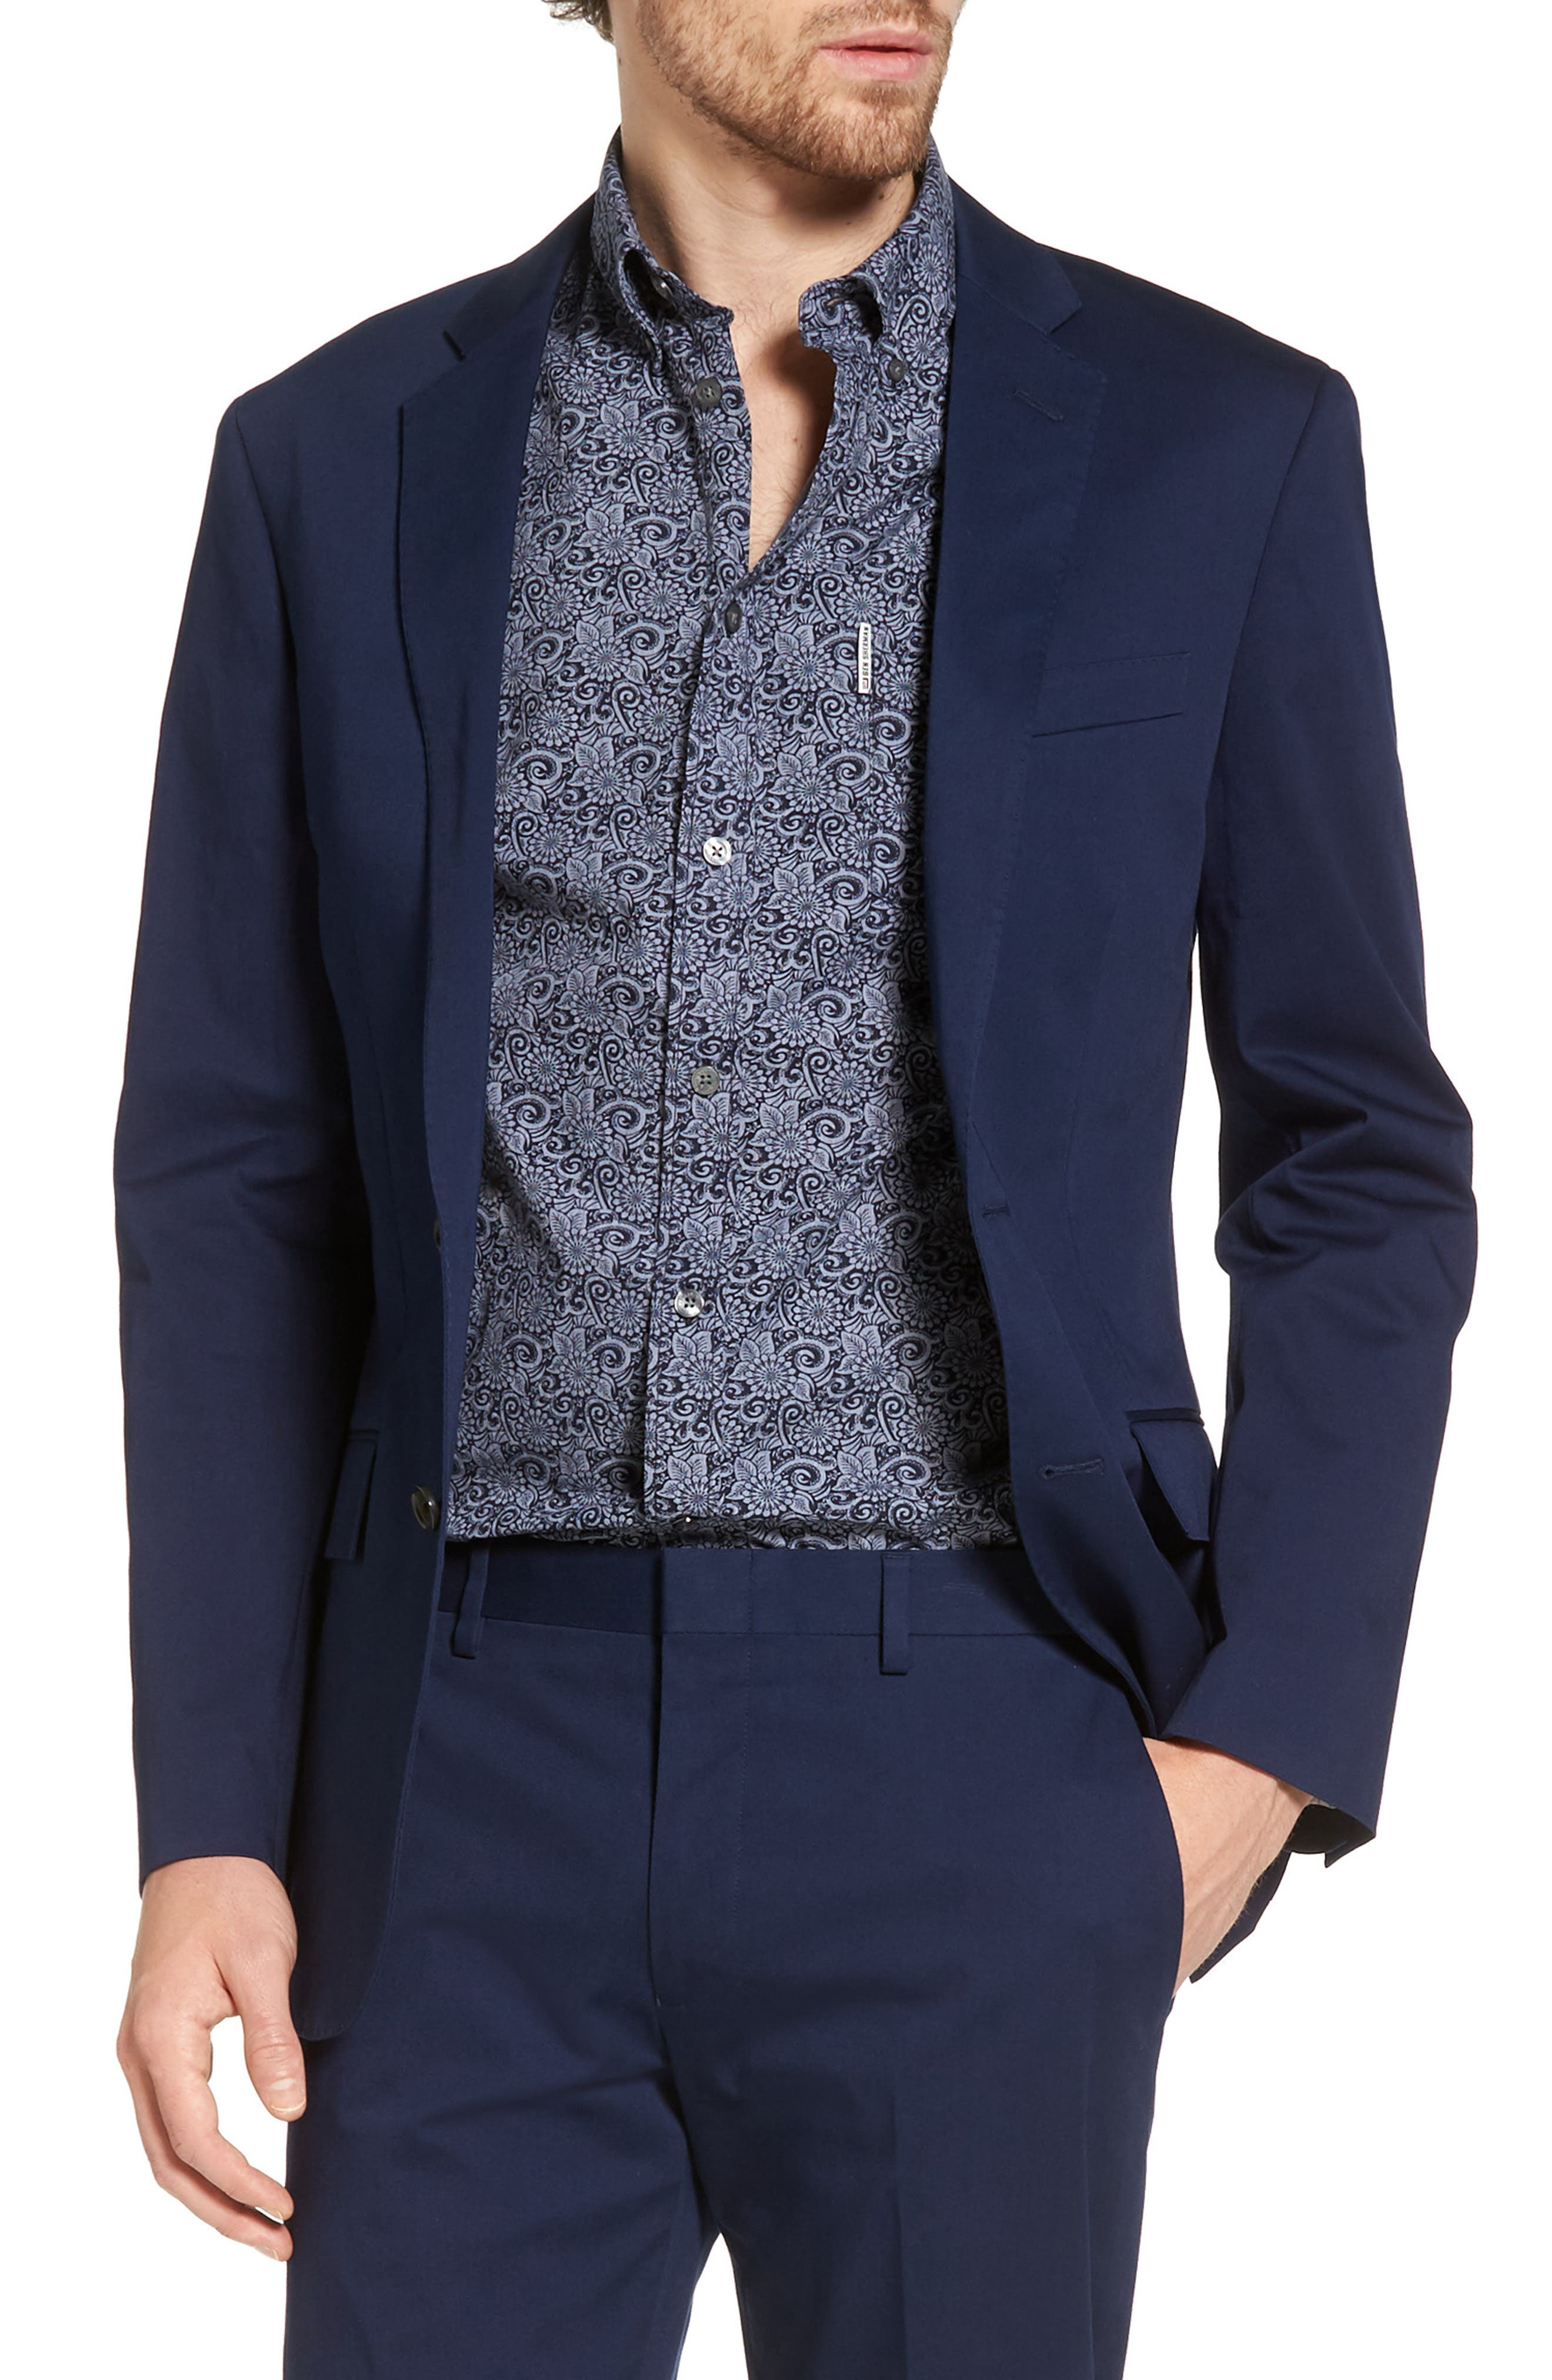 J.Crew Ludlow Stretch Chino Blazer